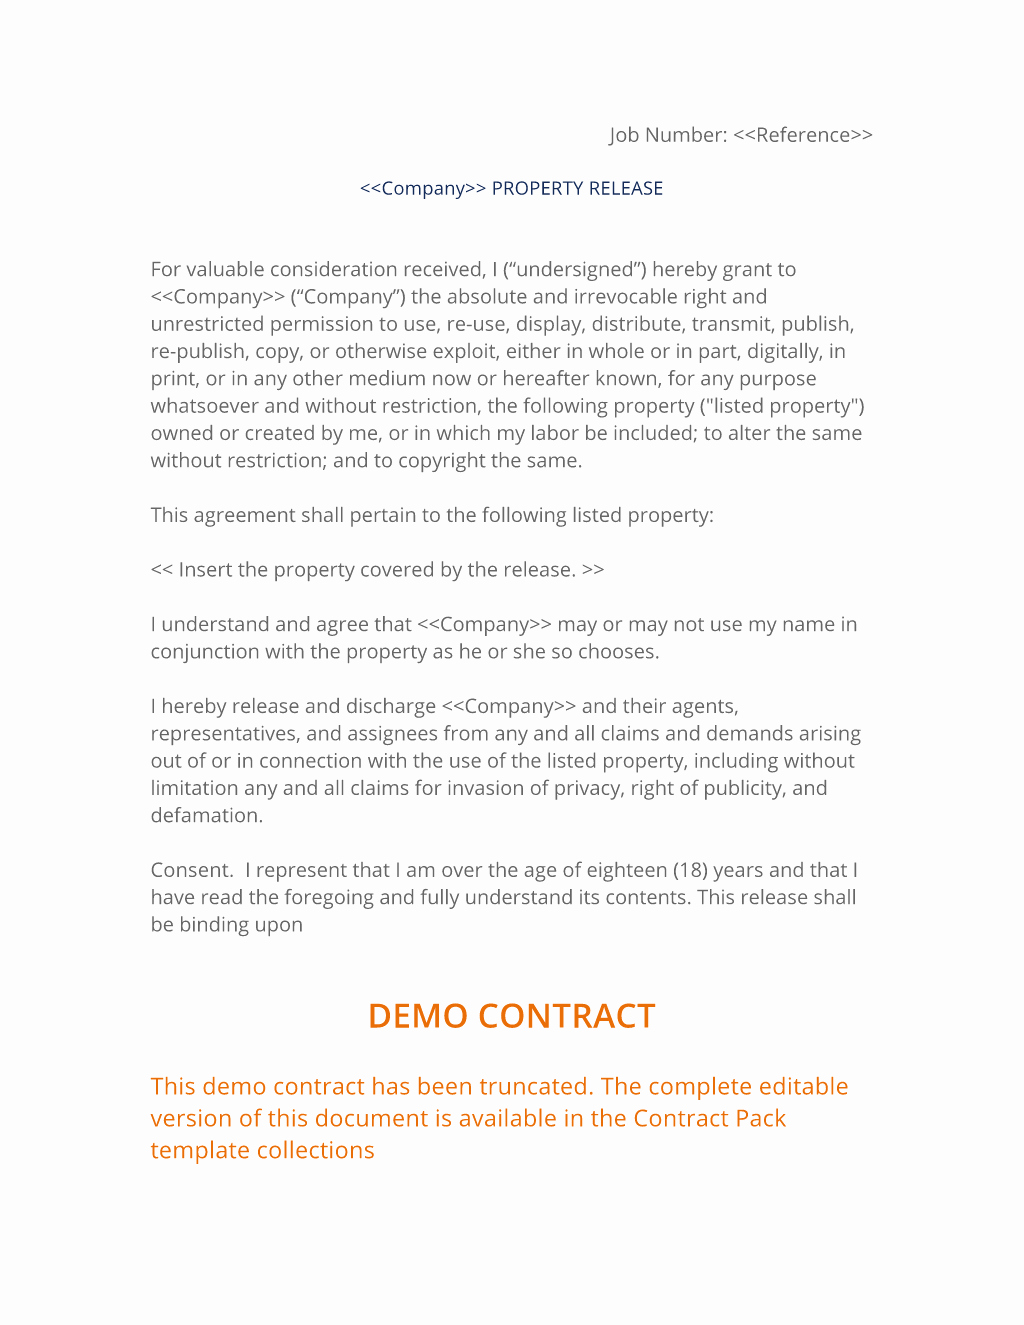 Property Release form Template Elegant Property Release Agreement 3 Easy Steps